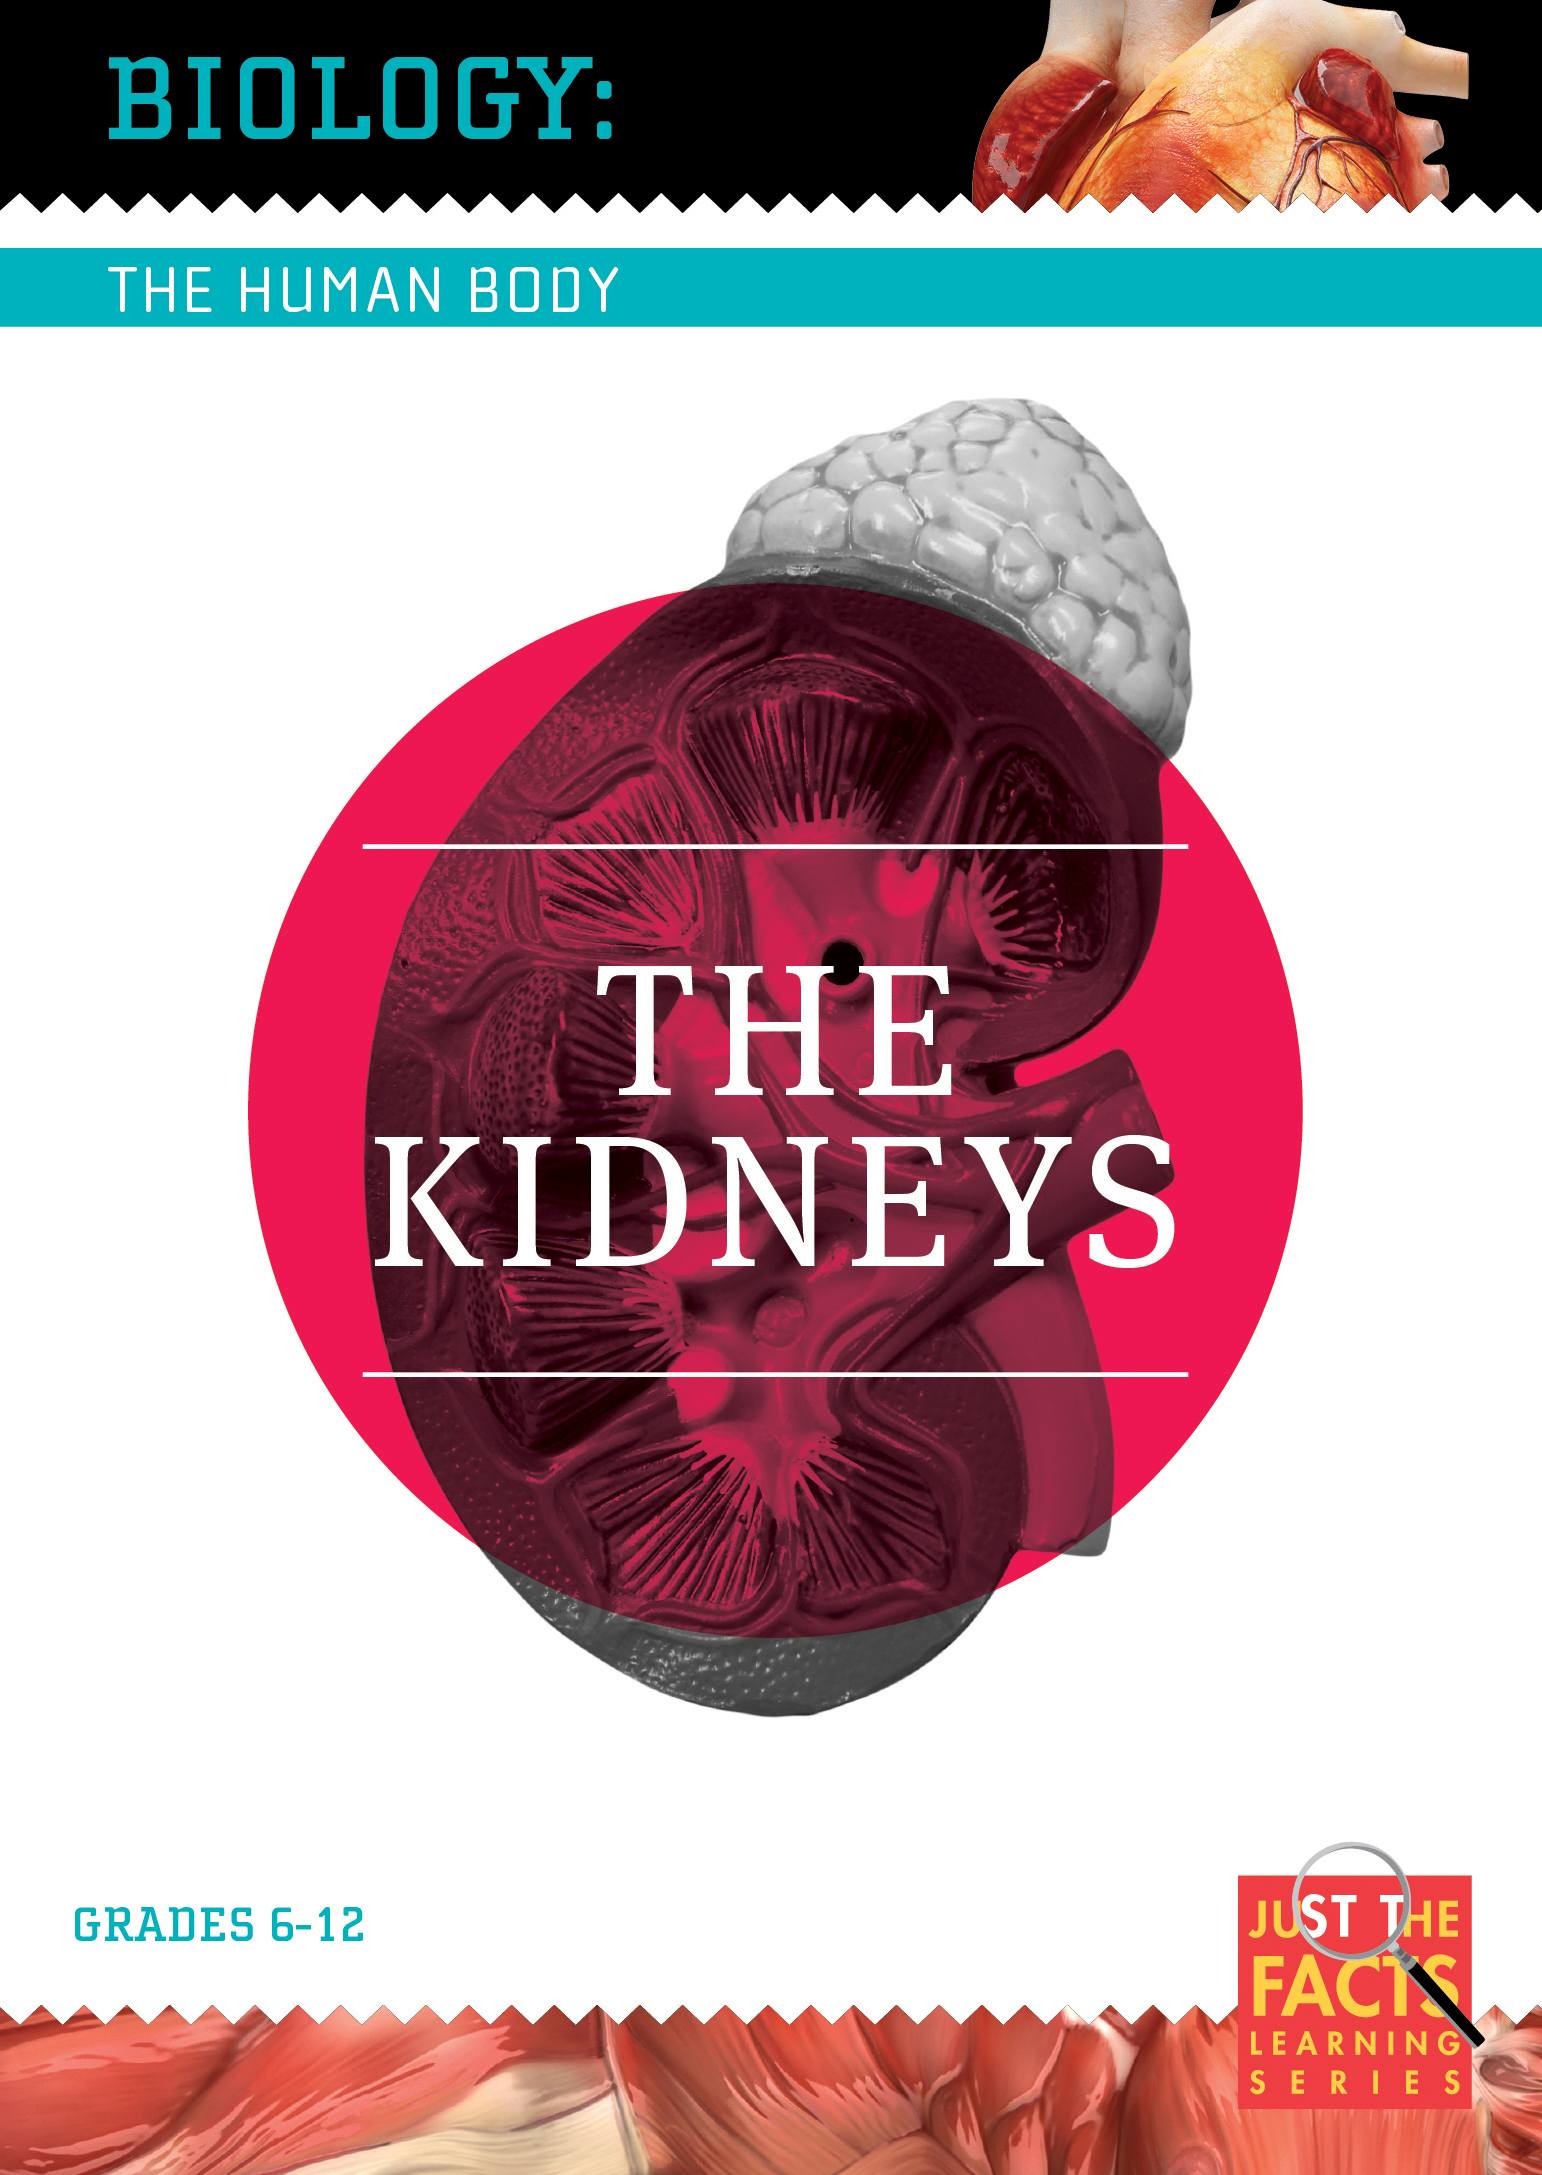 Biology of the Human Body: The Kidneys